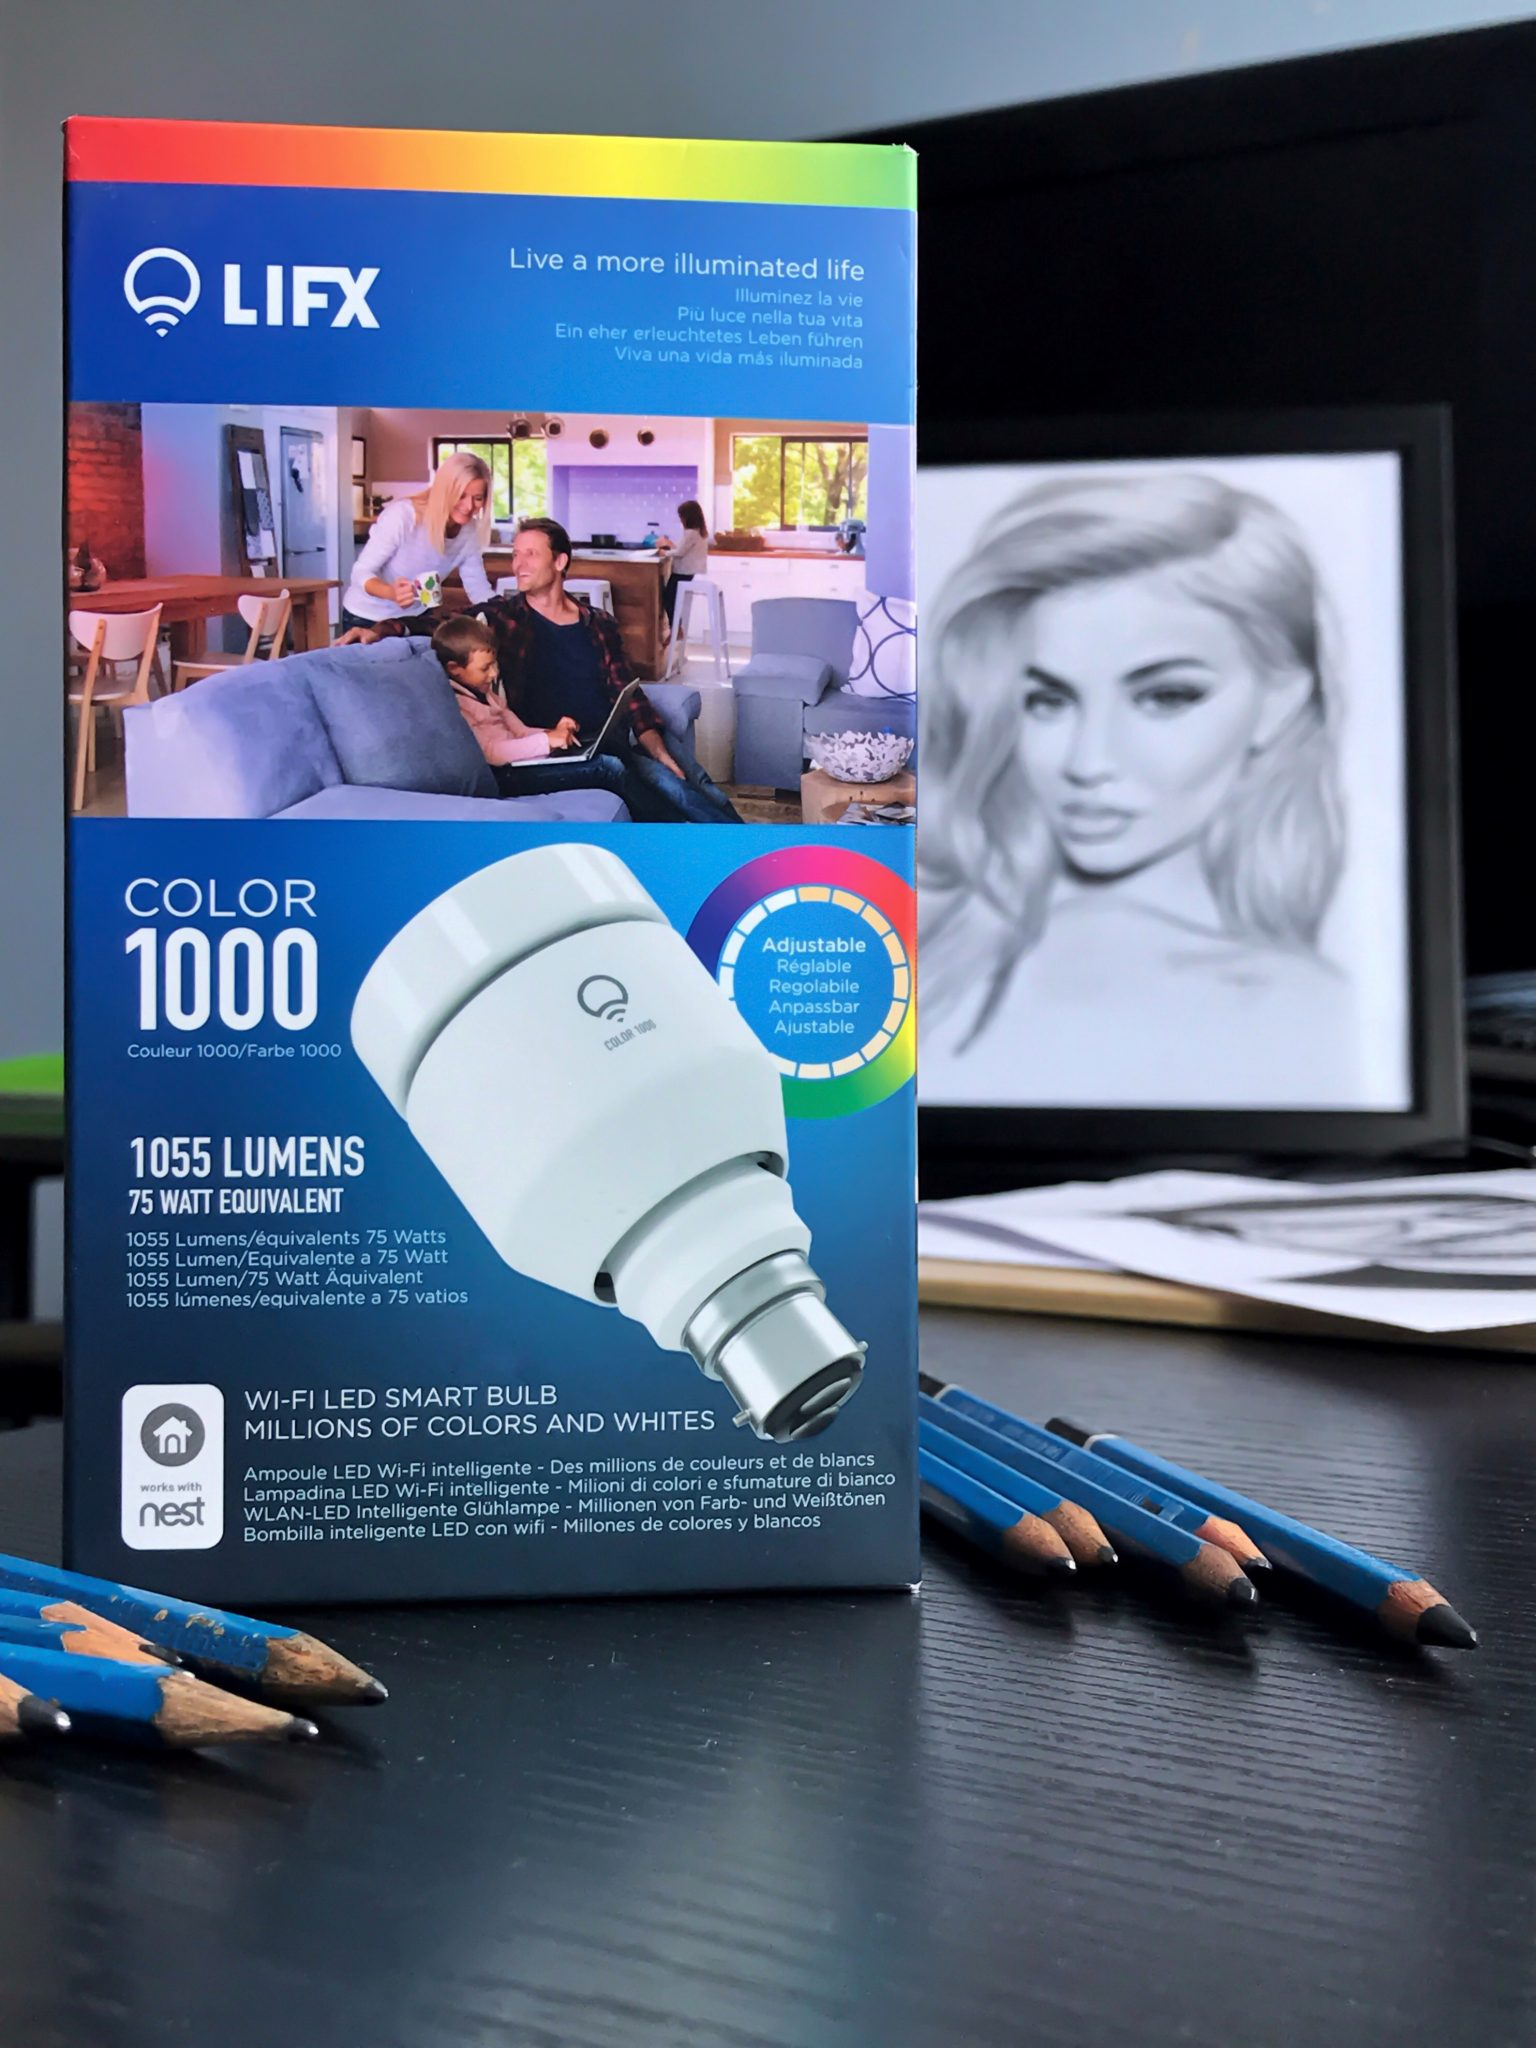 LIFX Bulb – lighting every artist needs.